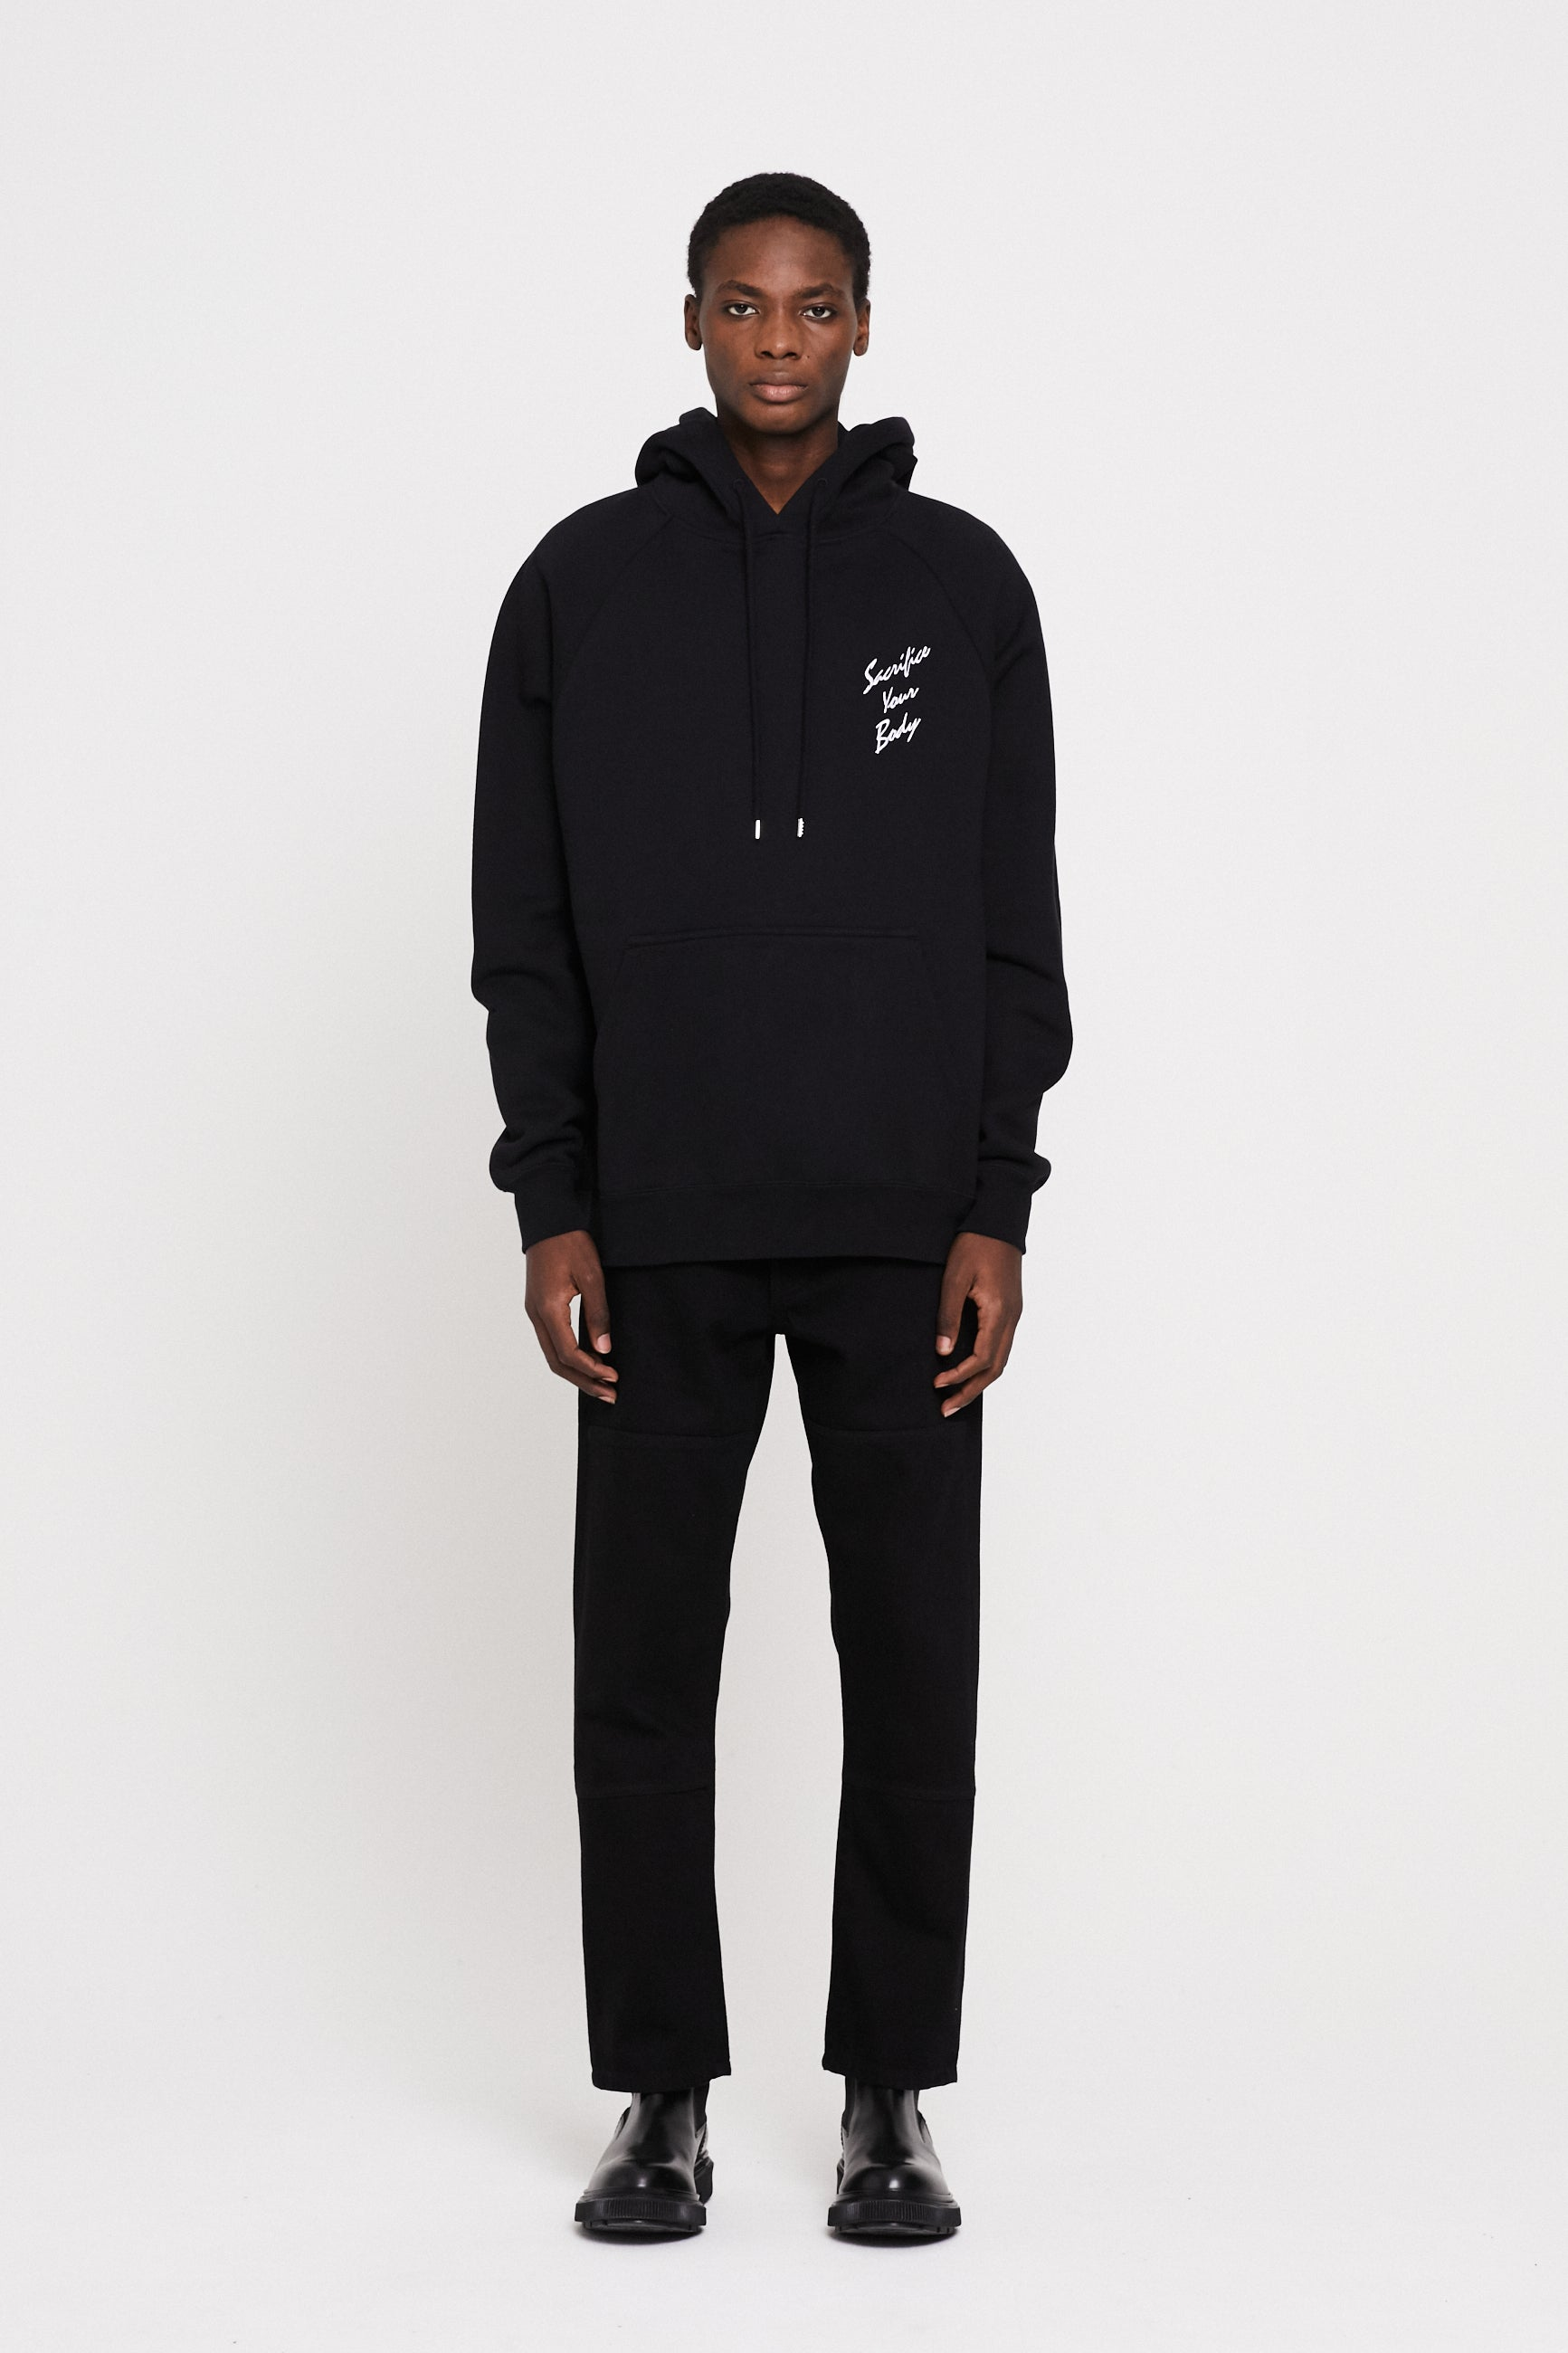 Études Racing Sacrifice Roe Ethridge Sweatshirt 1